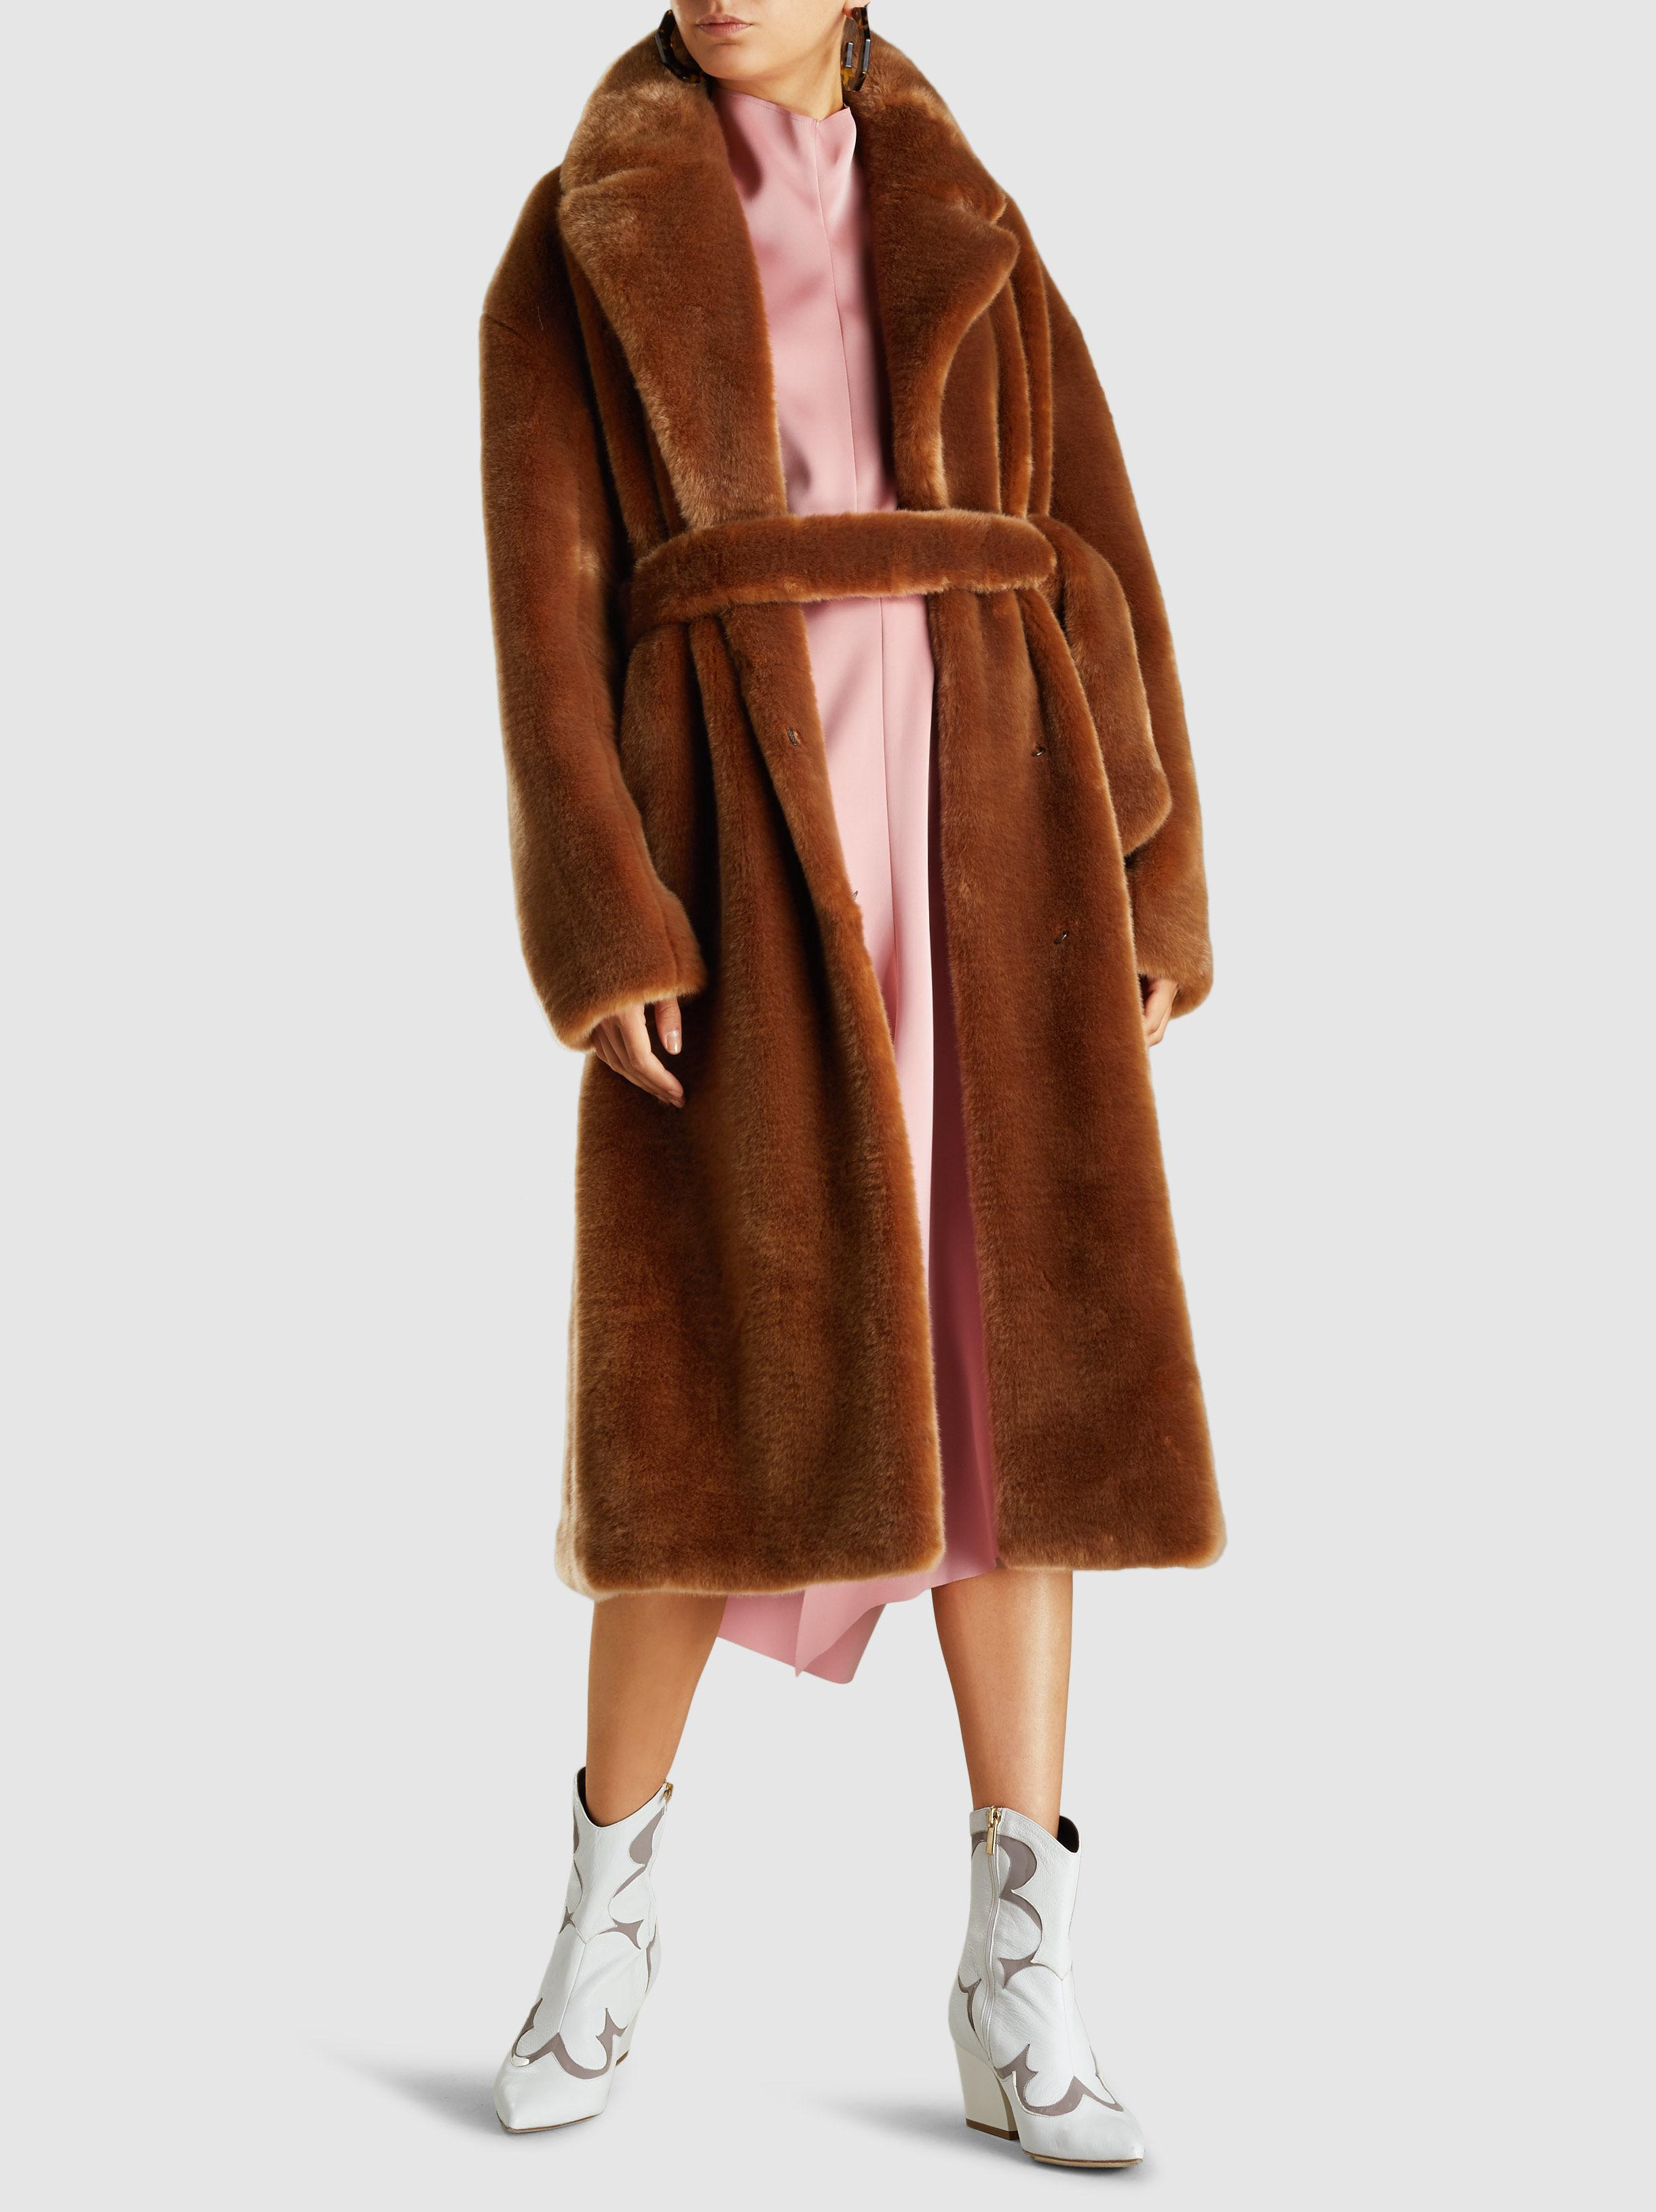 15f5e9bbb1aa Lyst - Tibi Luxe Faux-fur Oversized Trench Coat in Brown - Save 68%